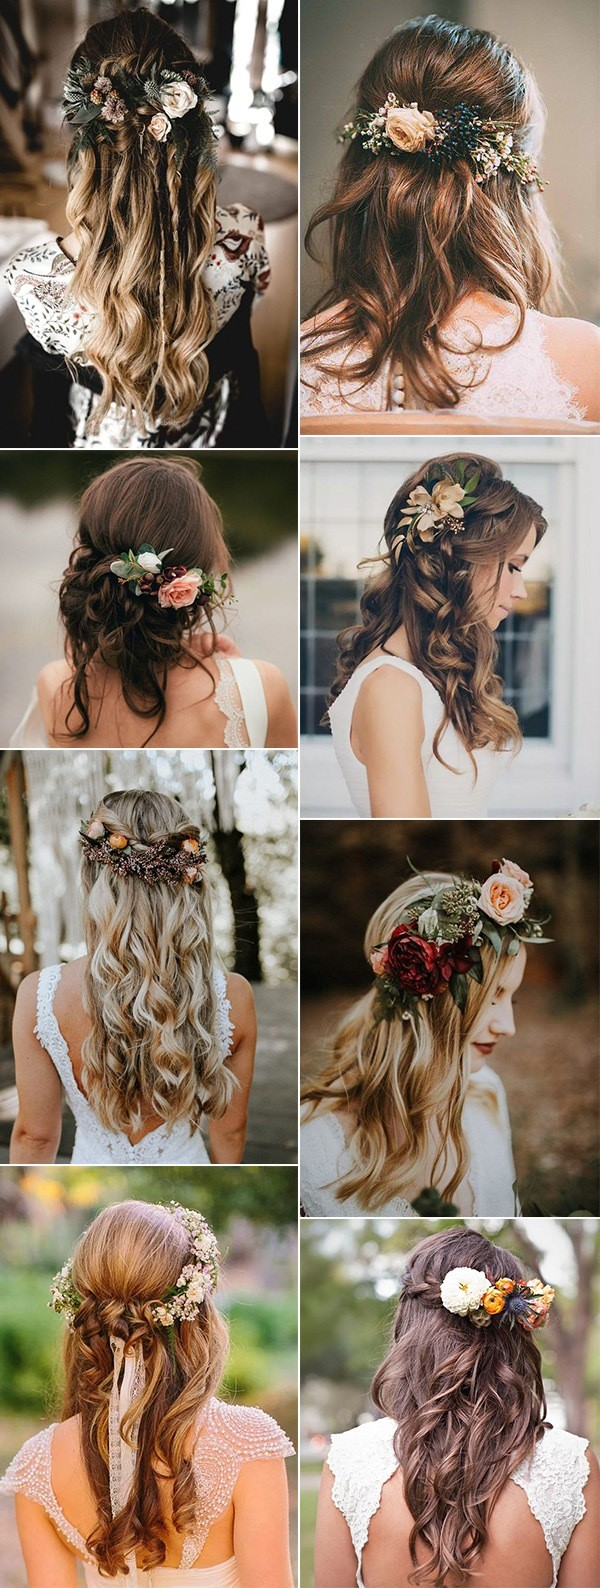 wedding hairstyles for fall 2018 and 2019